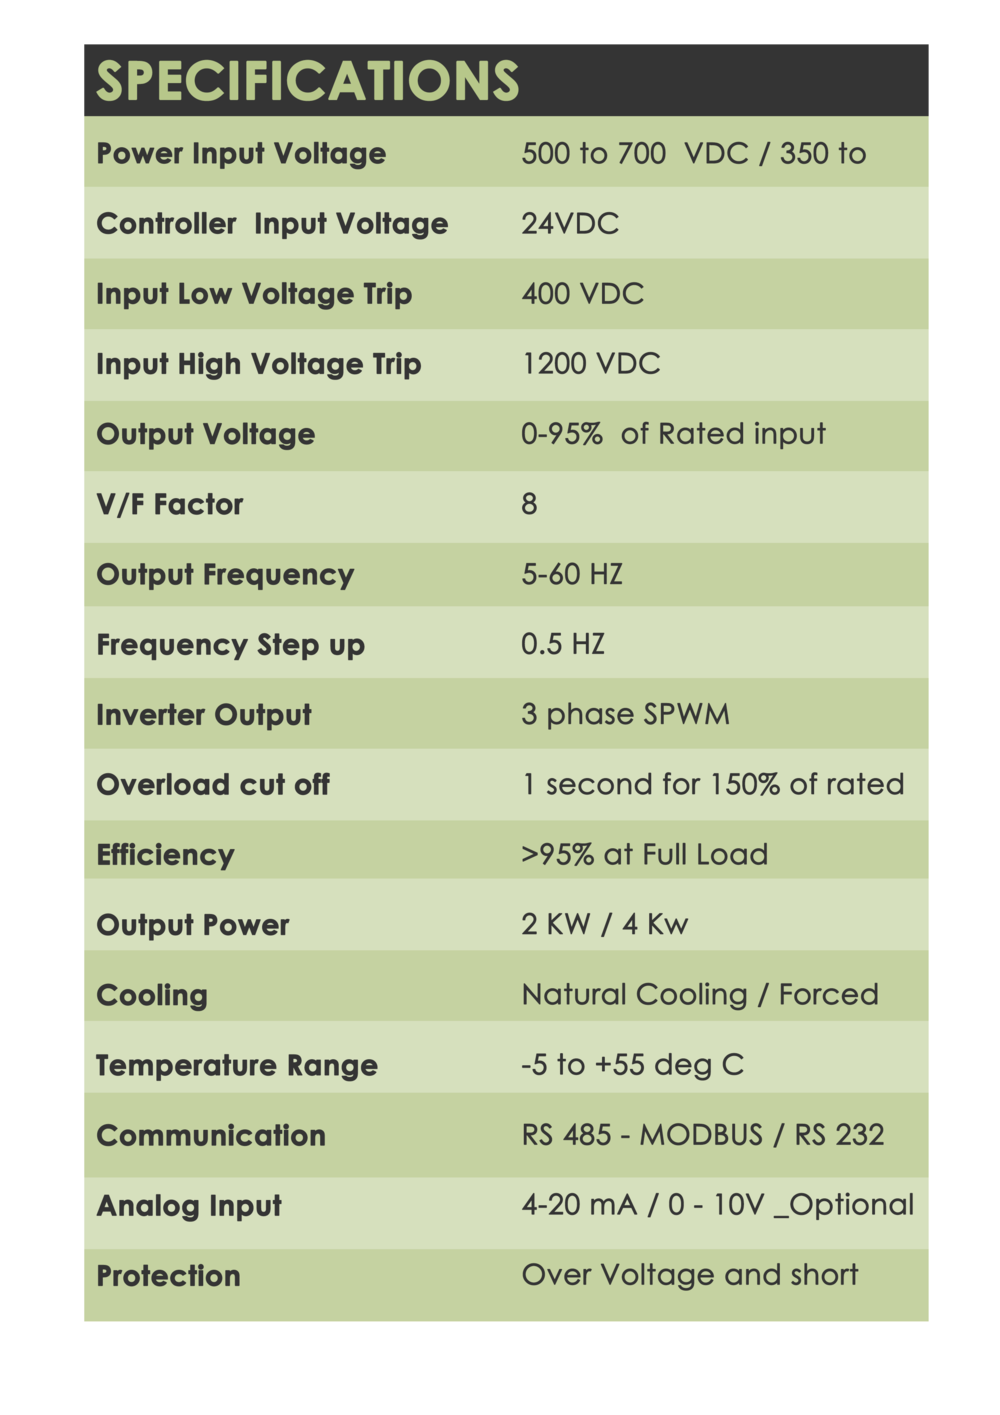 Specifications - VFD copy.png